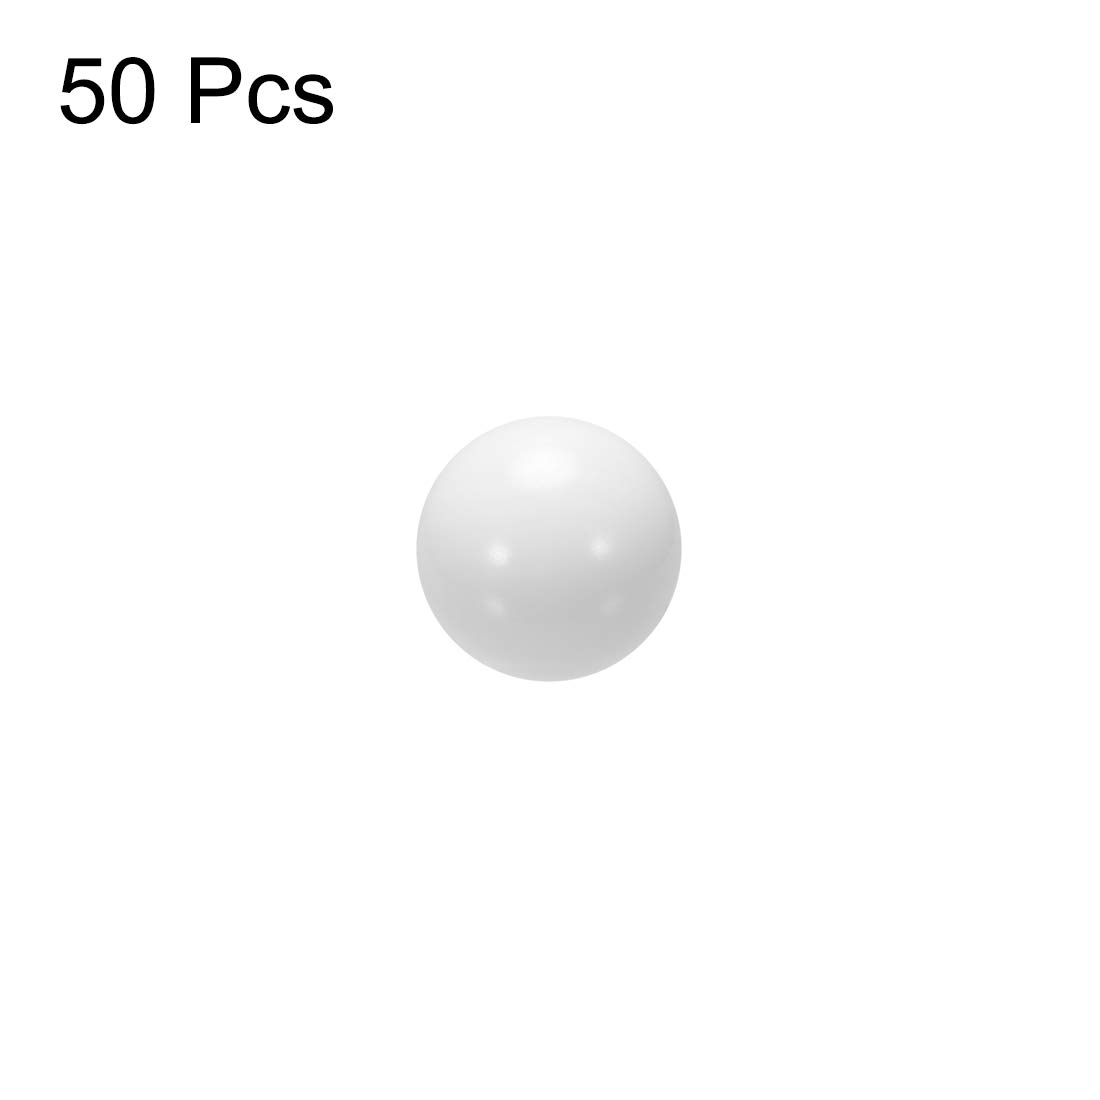 Plastic Bearing Ball 50pcs sourcing map 4.5mm POM Coin Ring Making Balls